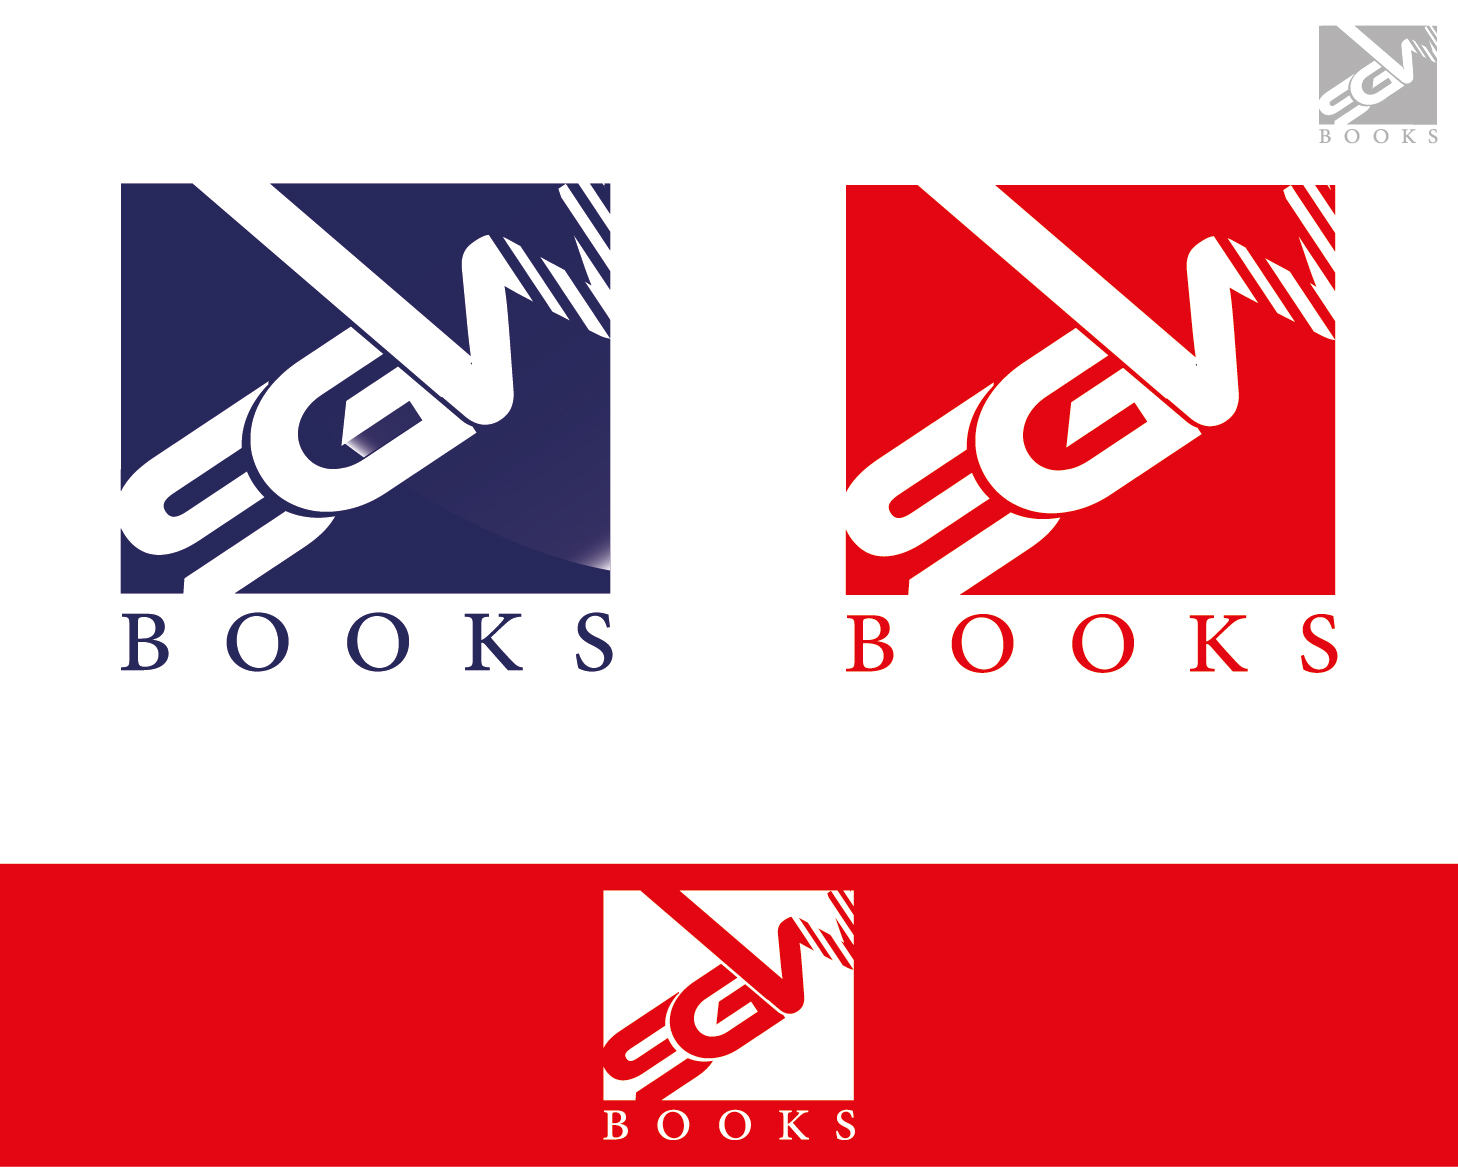 Logo Design by VENTSISLAV KOVACHEV - Entry No. 30 in the Logo Design Contest SGW Books Logo Design.